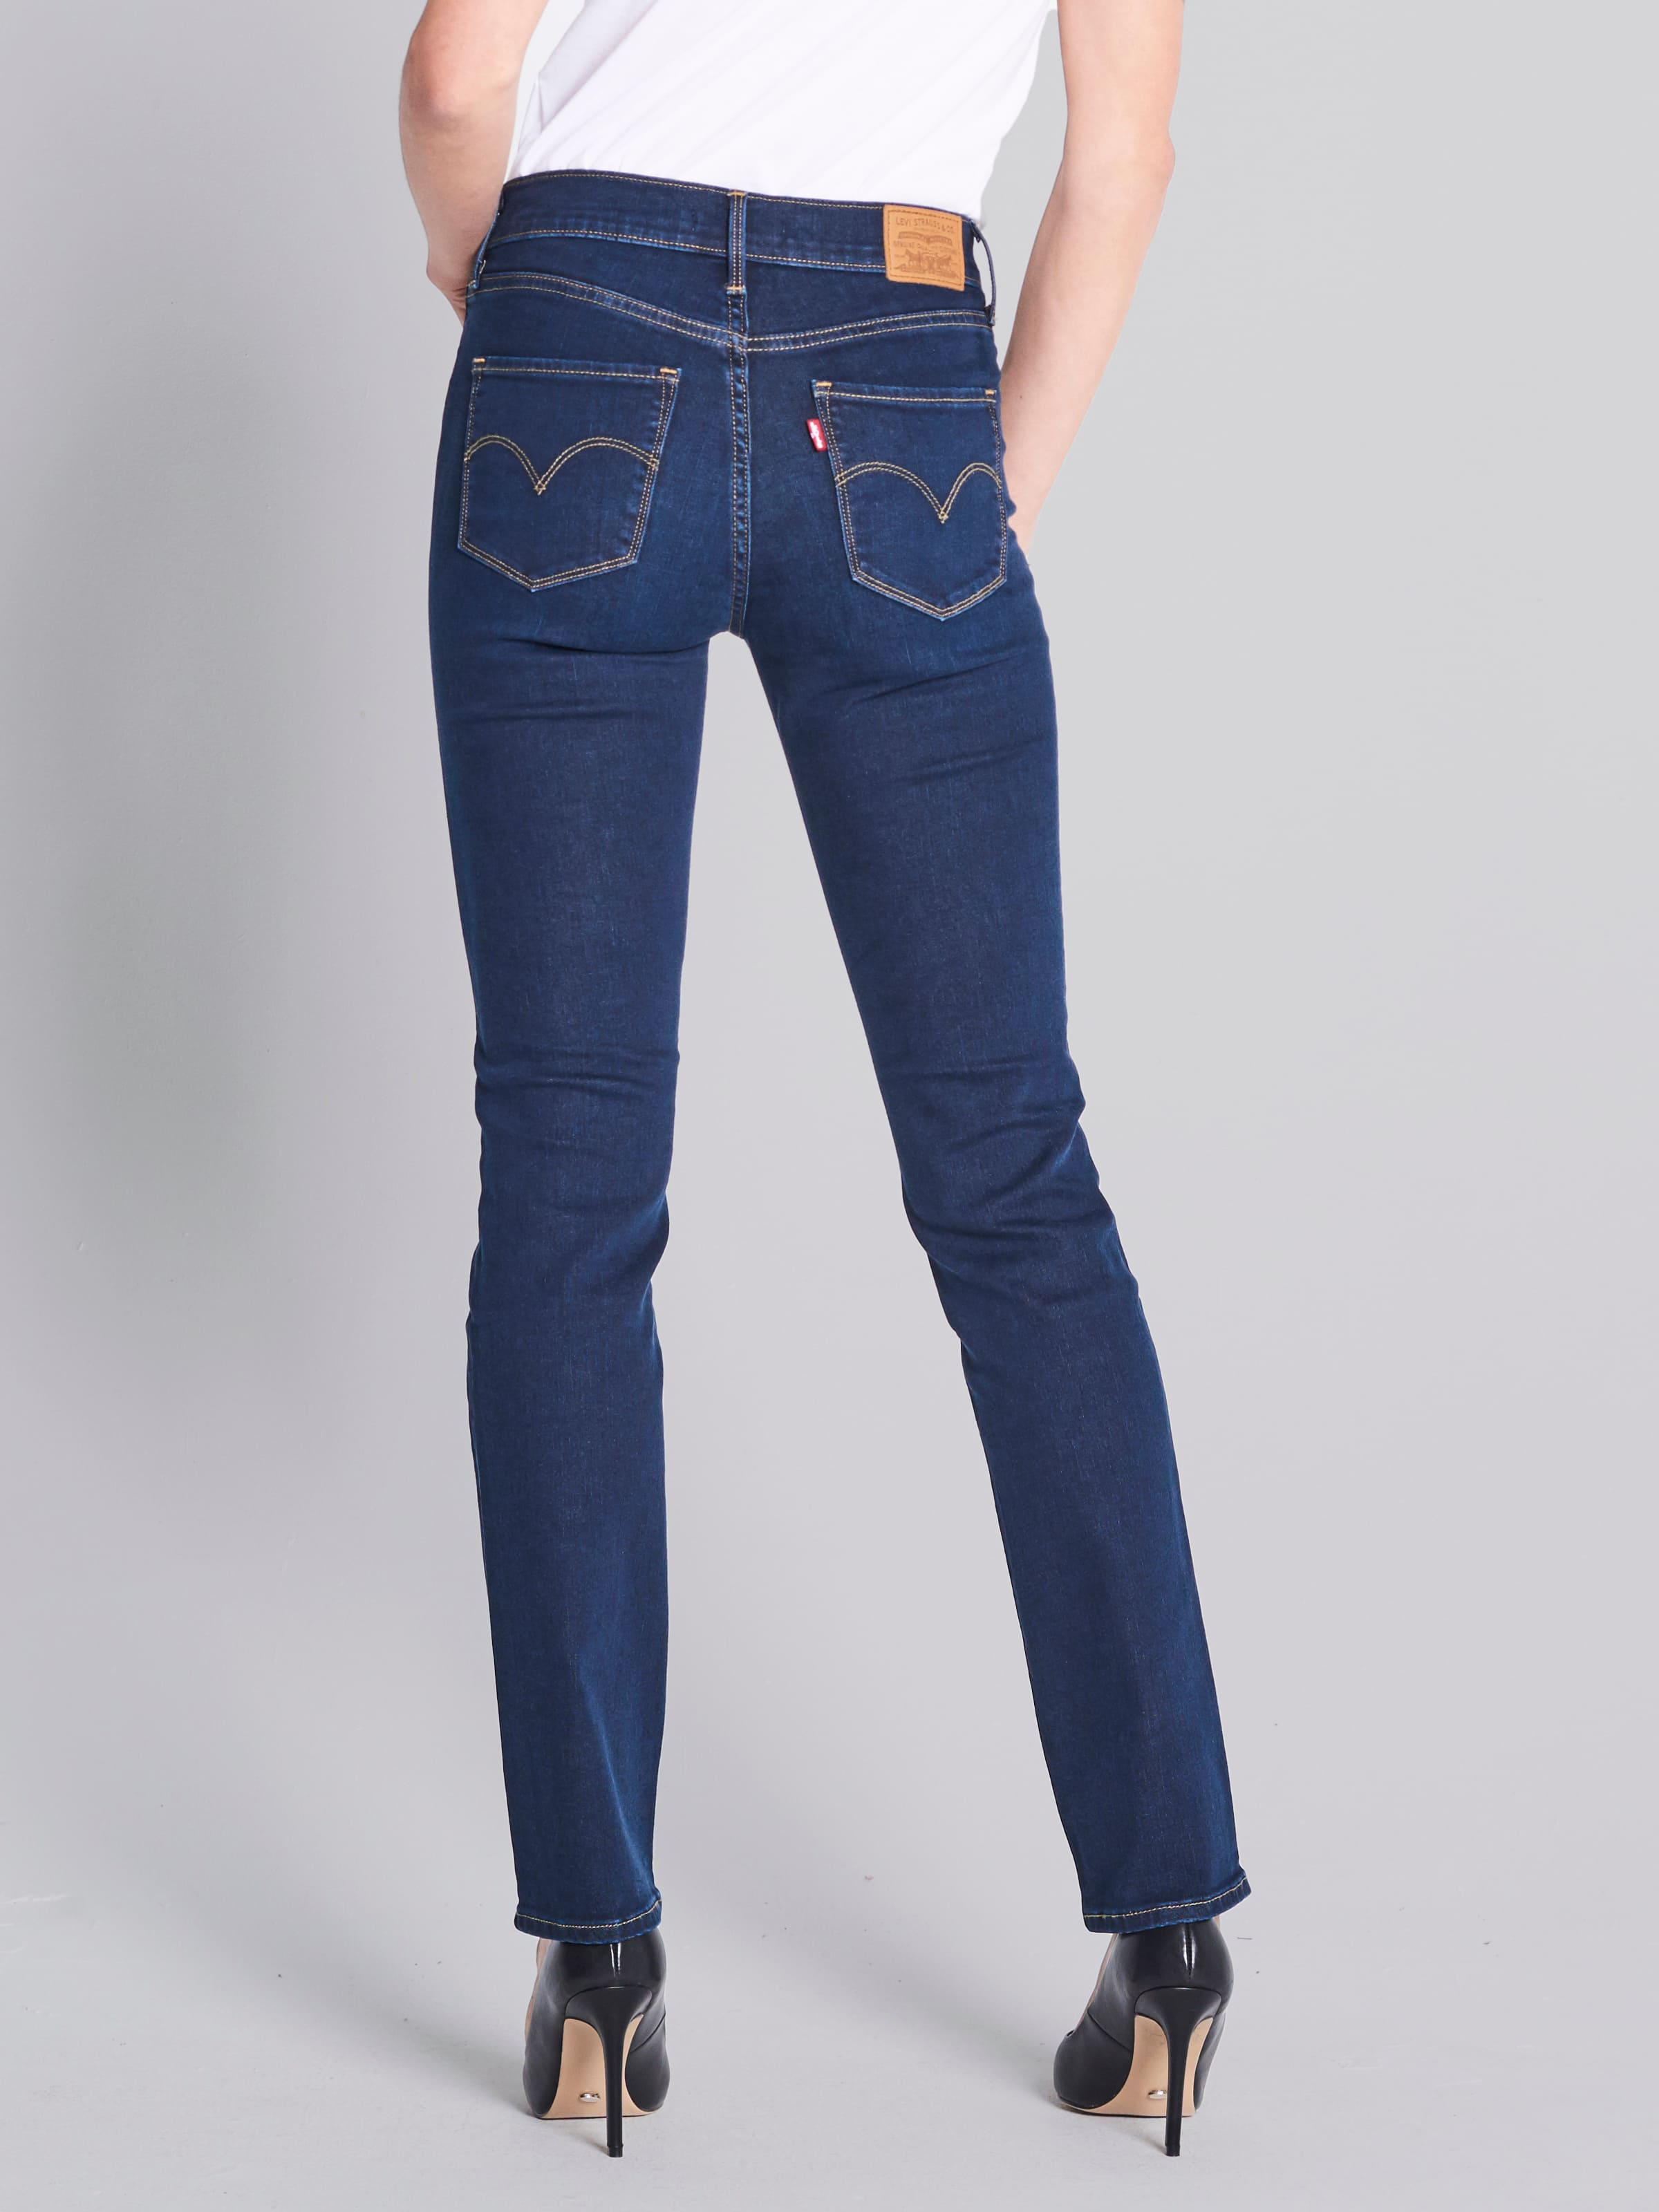 ... Image for Levi s 312 Shaping Slim In Darkside Blue from Just Jeans 50cb72639a